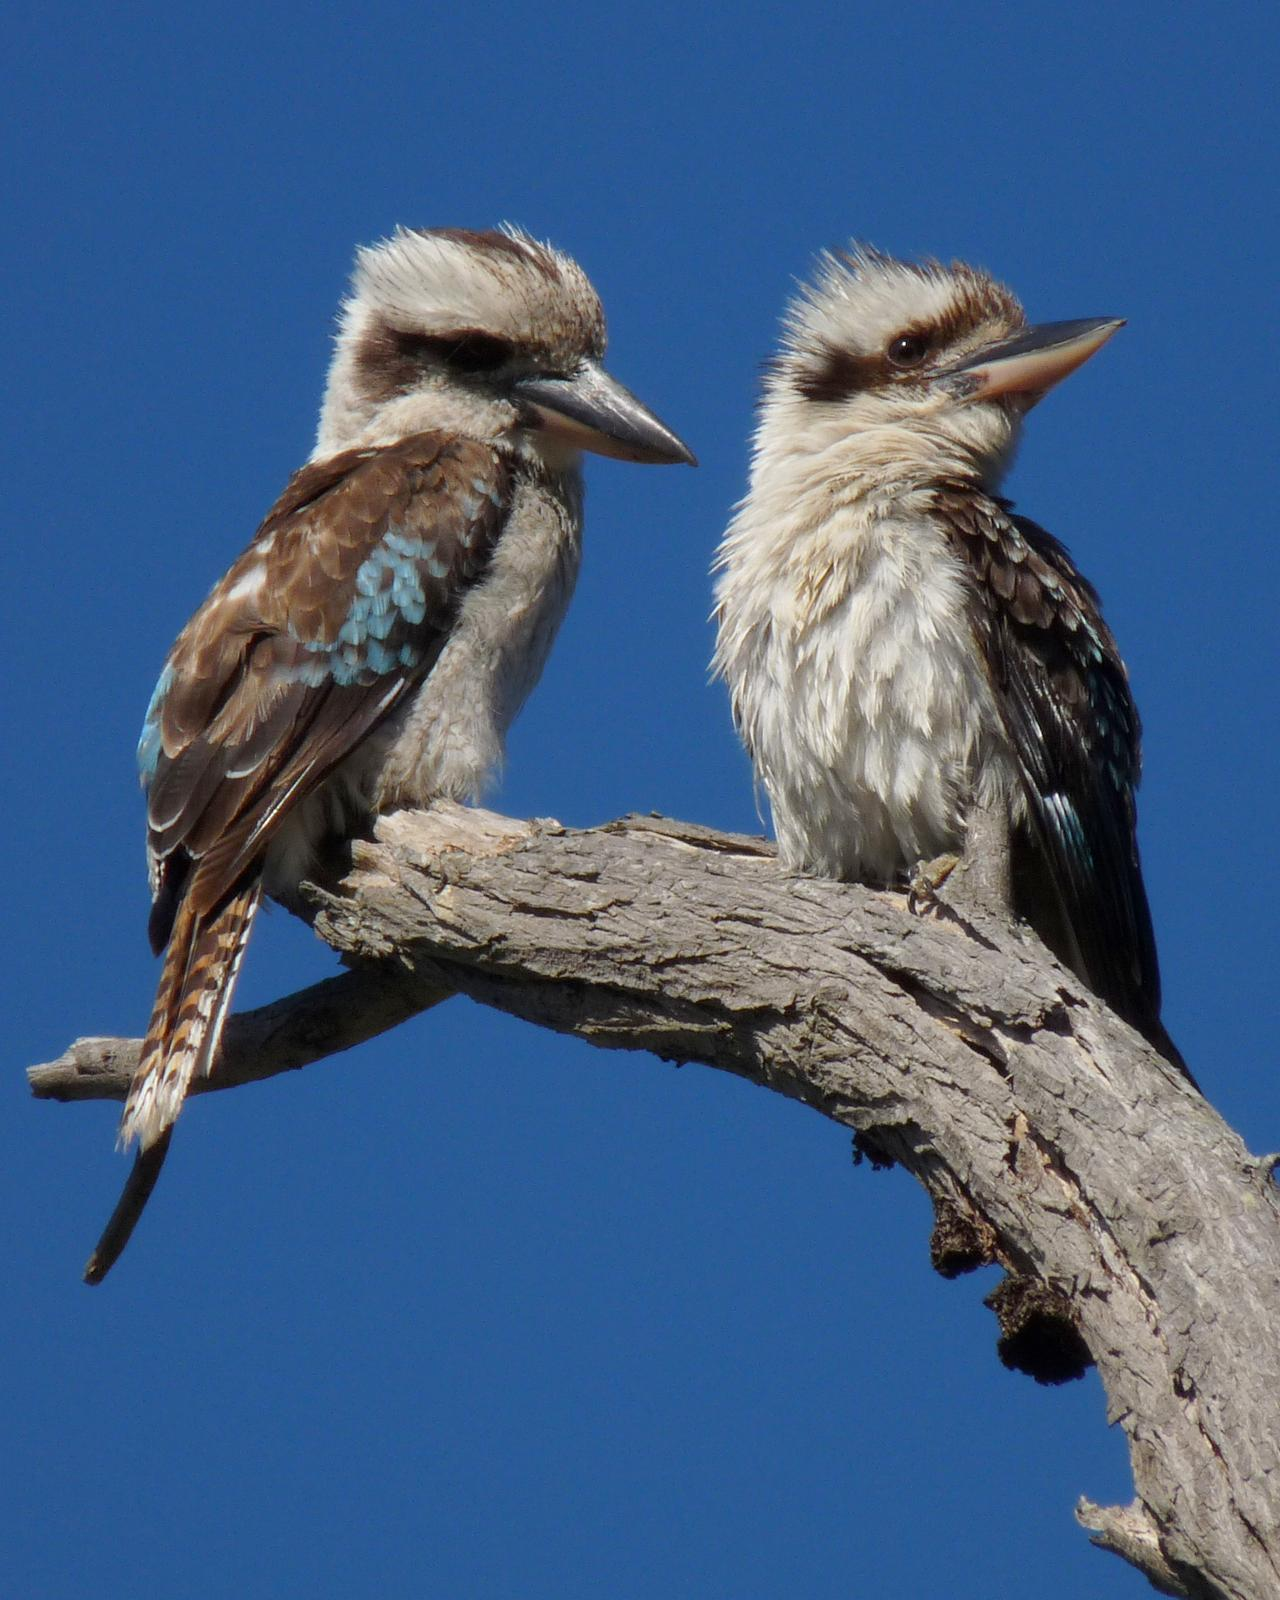 Laughing Kookaburra Photo by Peter Lowe